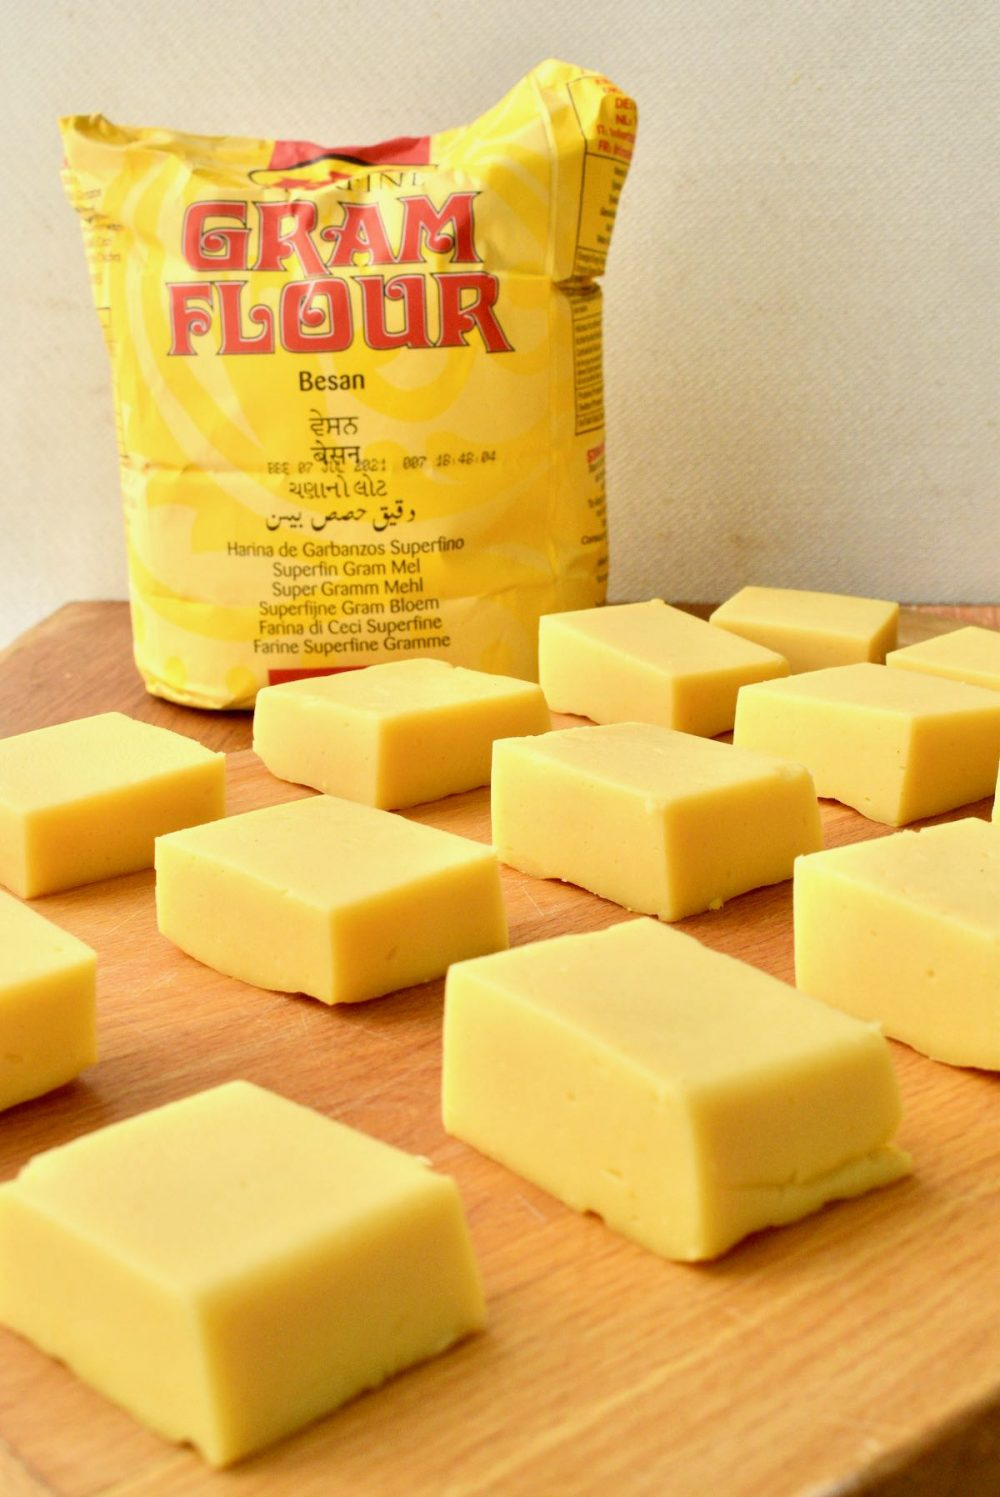 Slices of yellow tofu on a wooden board in front of a bag of gram flour